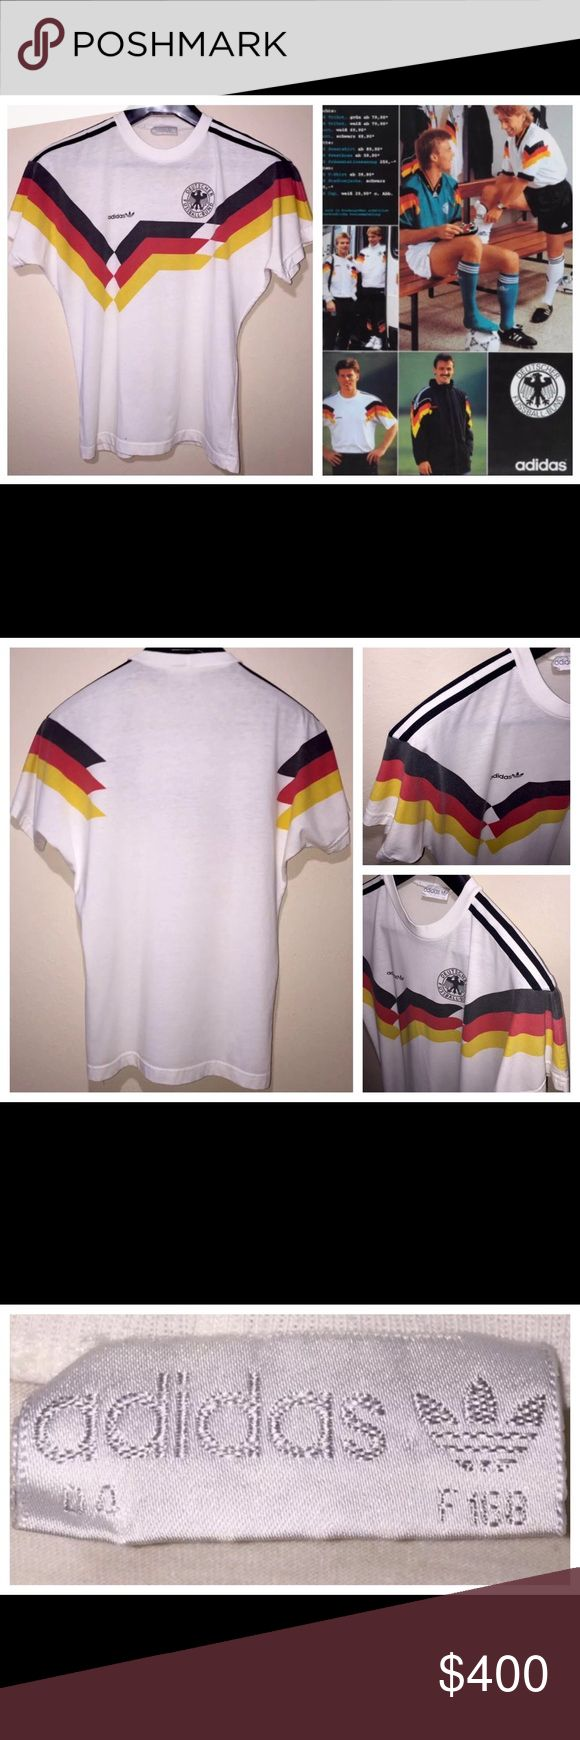 """Vintage Adidas Germany DFB Deutscher Soccer Jersey Vintage 1970s - 1980s Adidas Germany DFB Deutscher Football Soccer Thin Jersey Shirt Size M  60% Cotton / 40% Polyester Made in Singapore See measurements for proper size and fit.  MEASUREMENTS: ACROSS PIT TO PIT: 20"""" BACK LENGTH: 27""""  Please view last photo for spot at the bottom of shirt. Thanks so much for your support. Good luck. adidas Shirts Tees - Short Sleeve"""